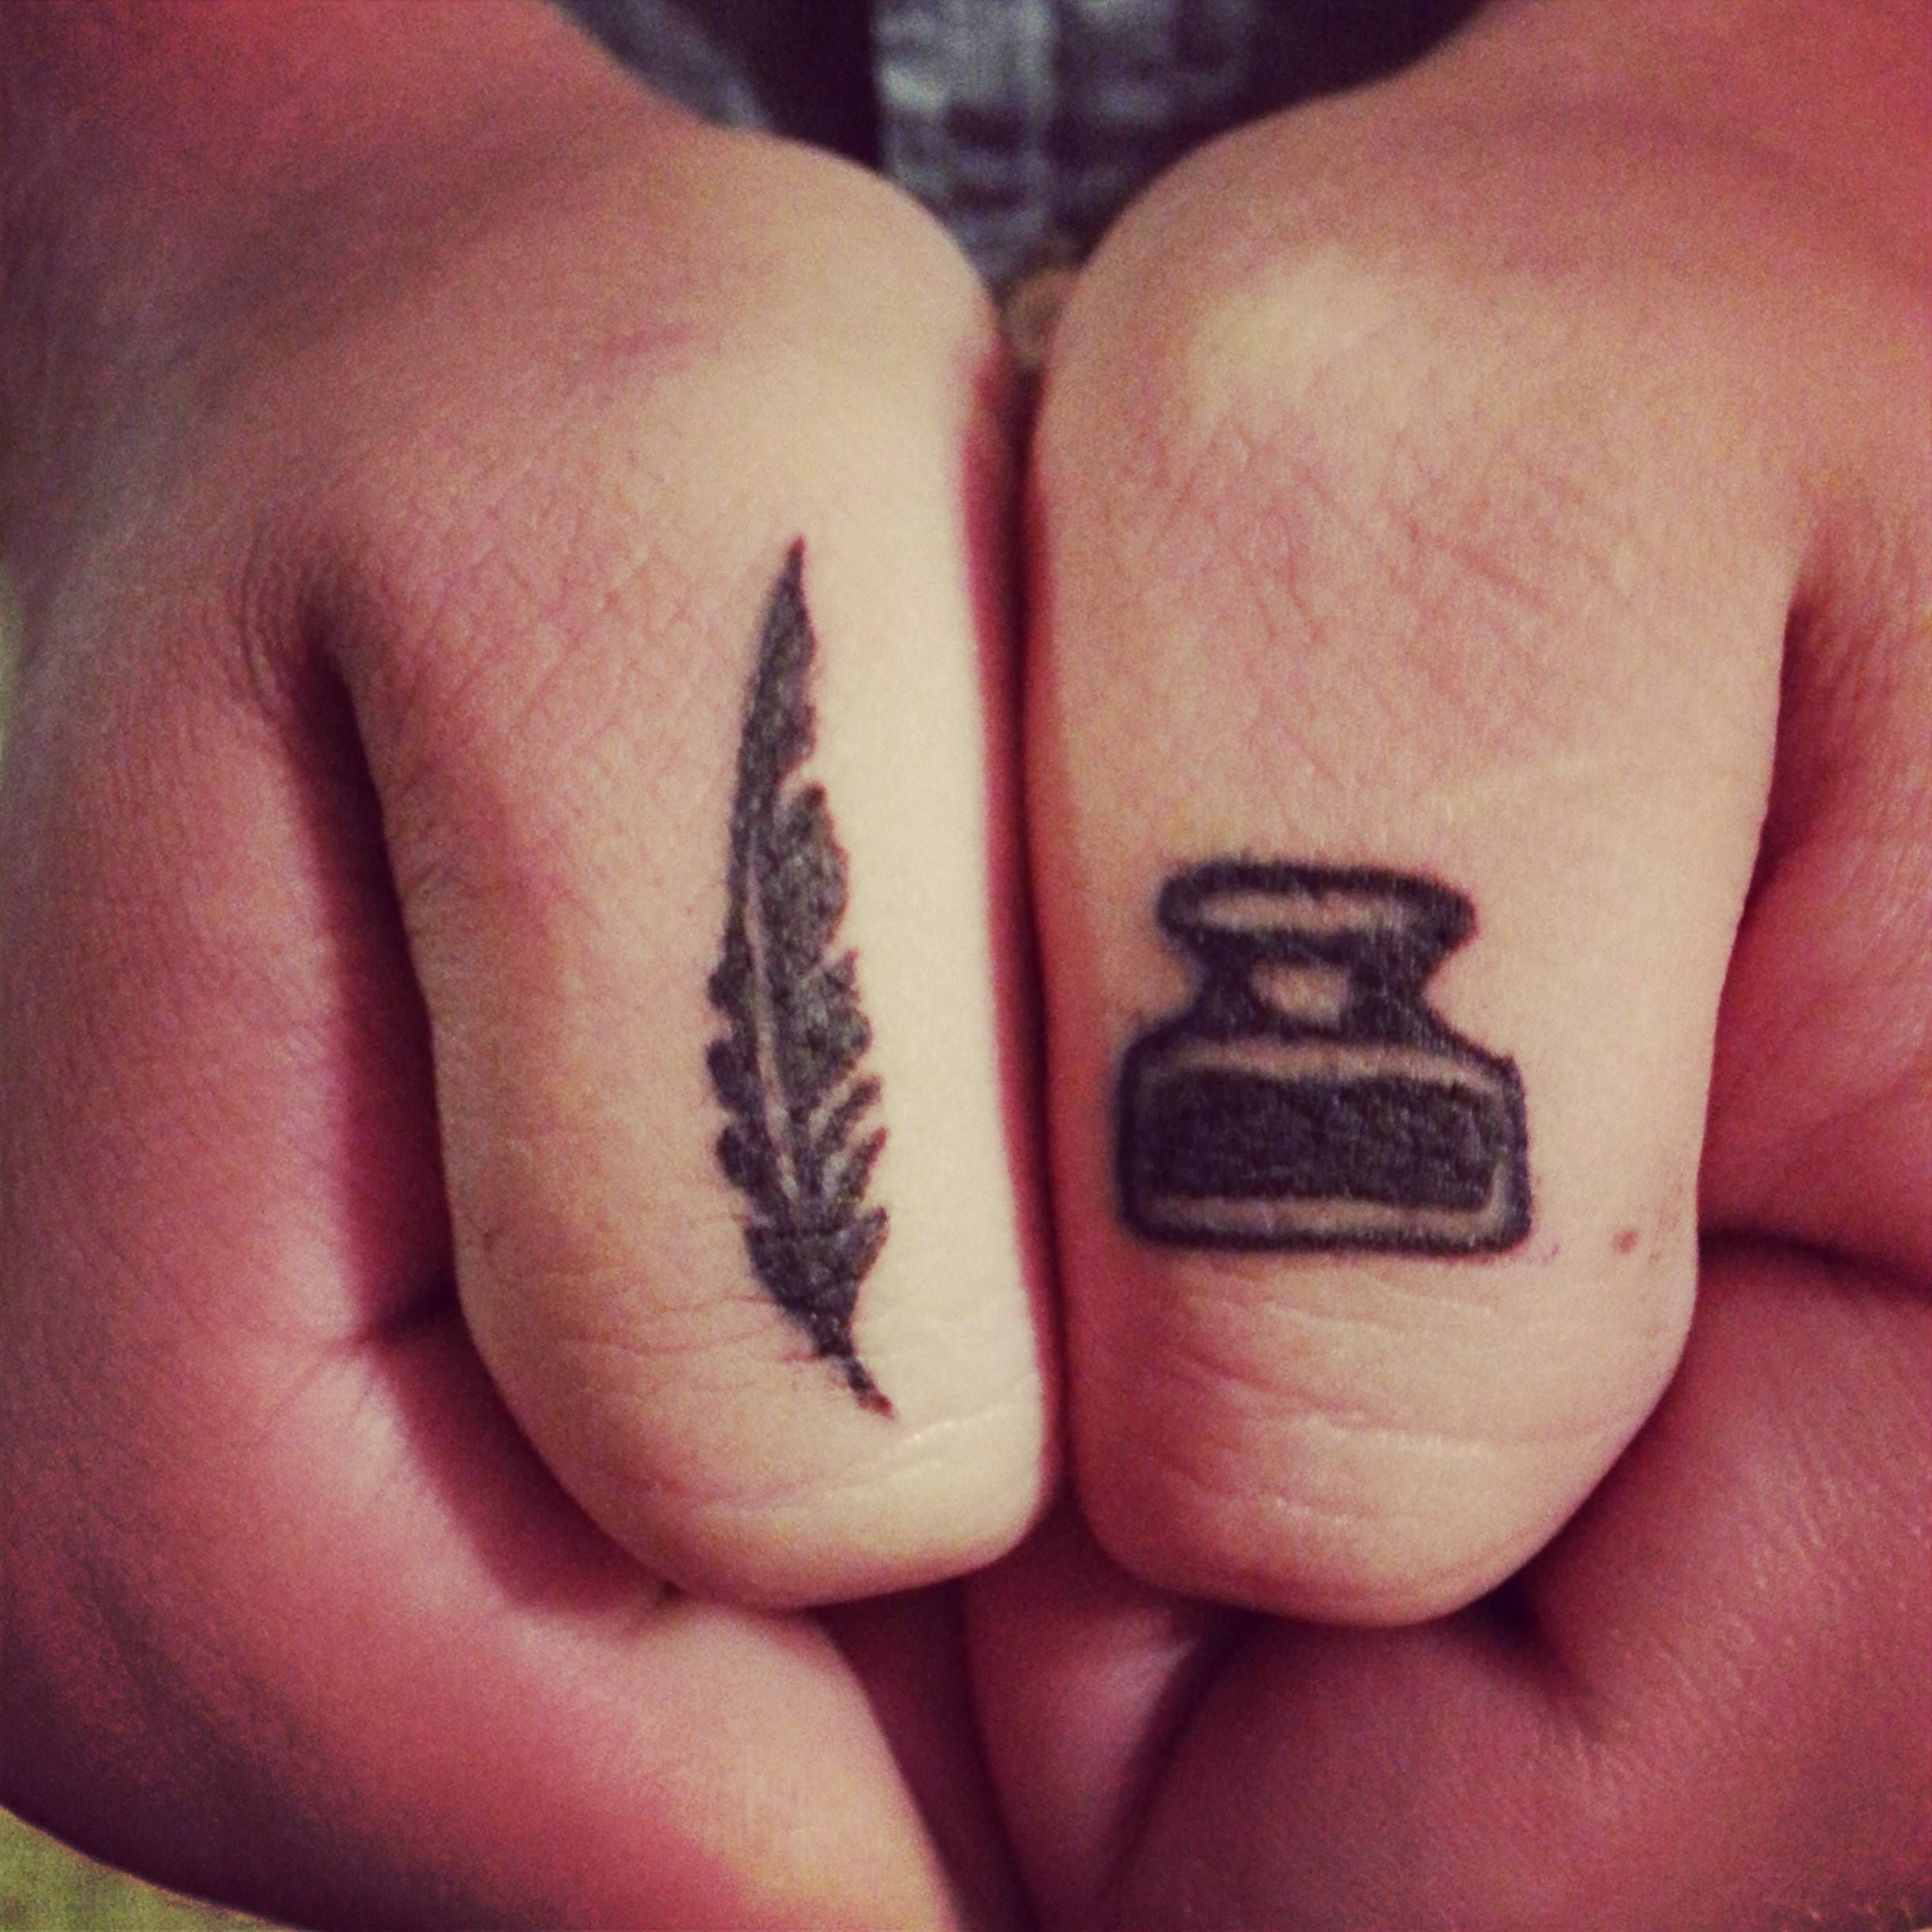 the writer in me longs for this. Quill and Ink, Dan at Heritage Tattoo